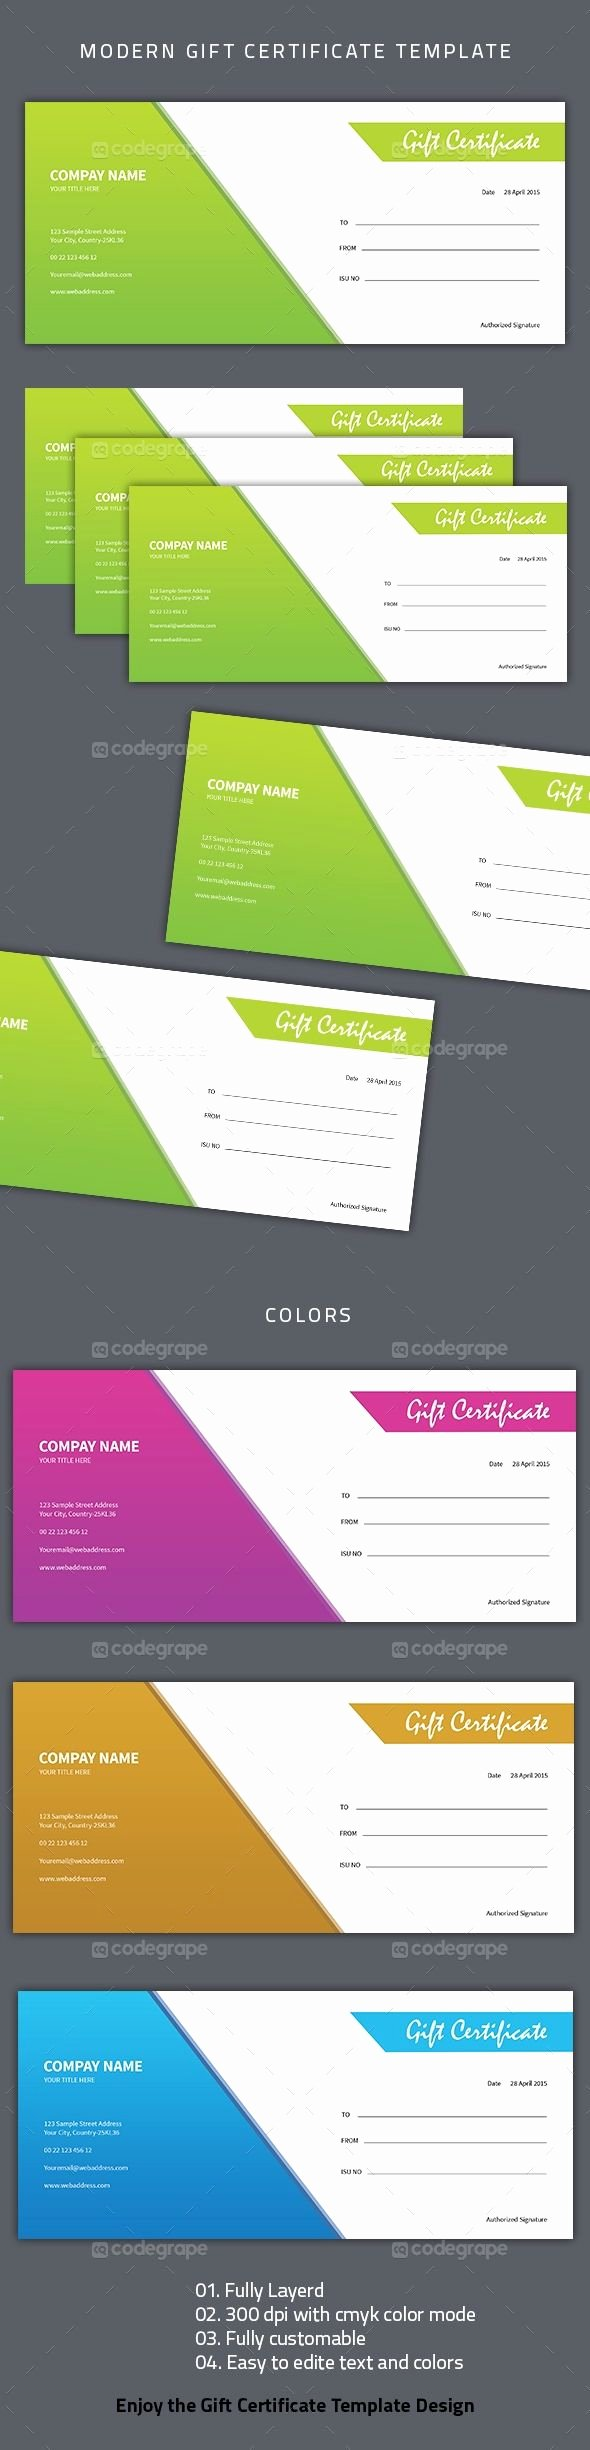 Gftlz Gift Certificate Template Download Lovely Pin by Codegrape On Prints